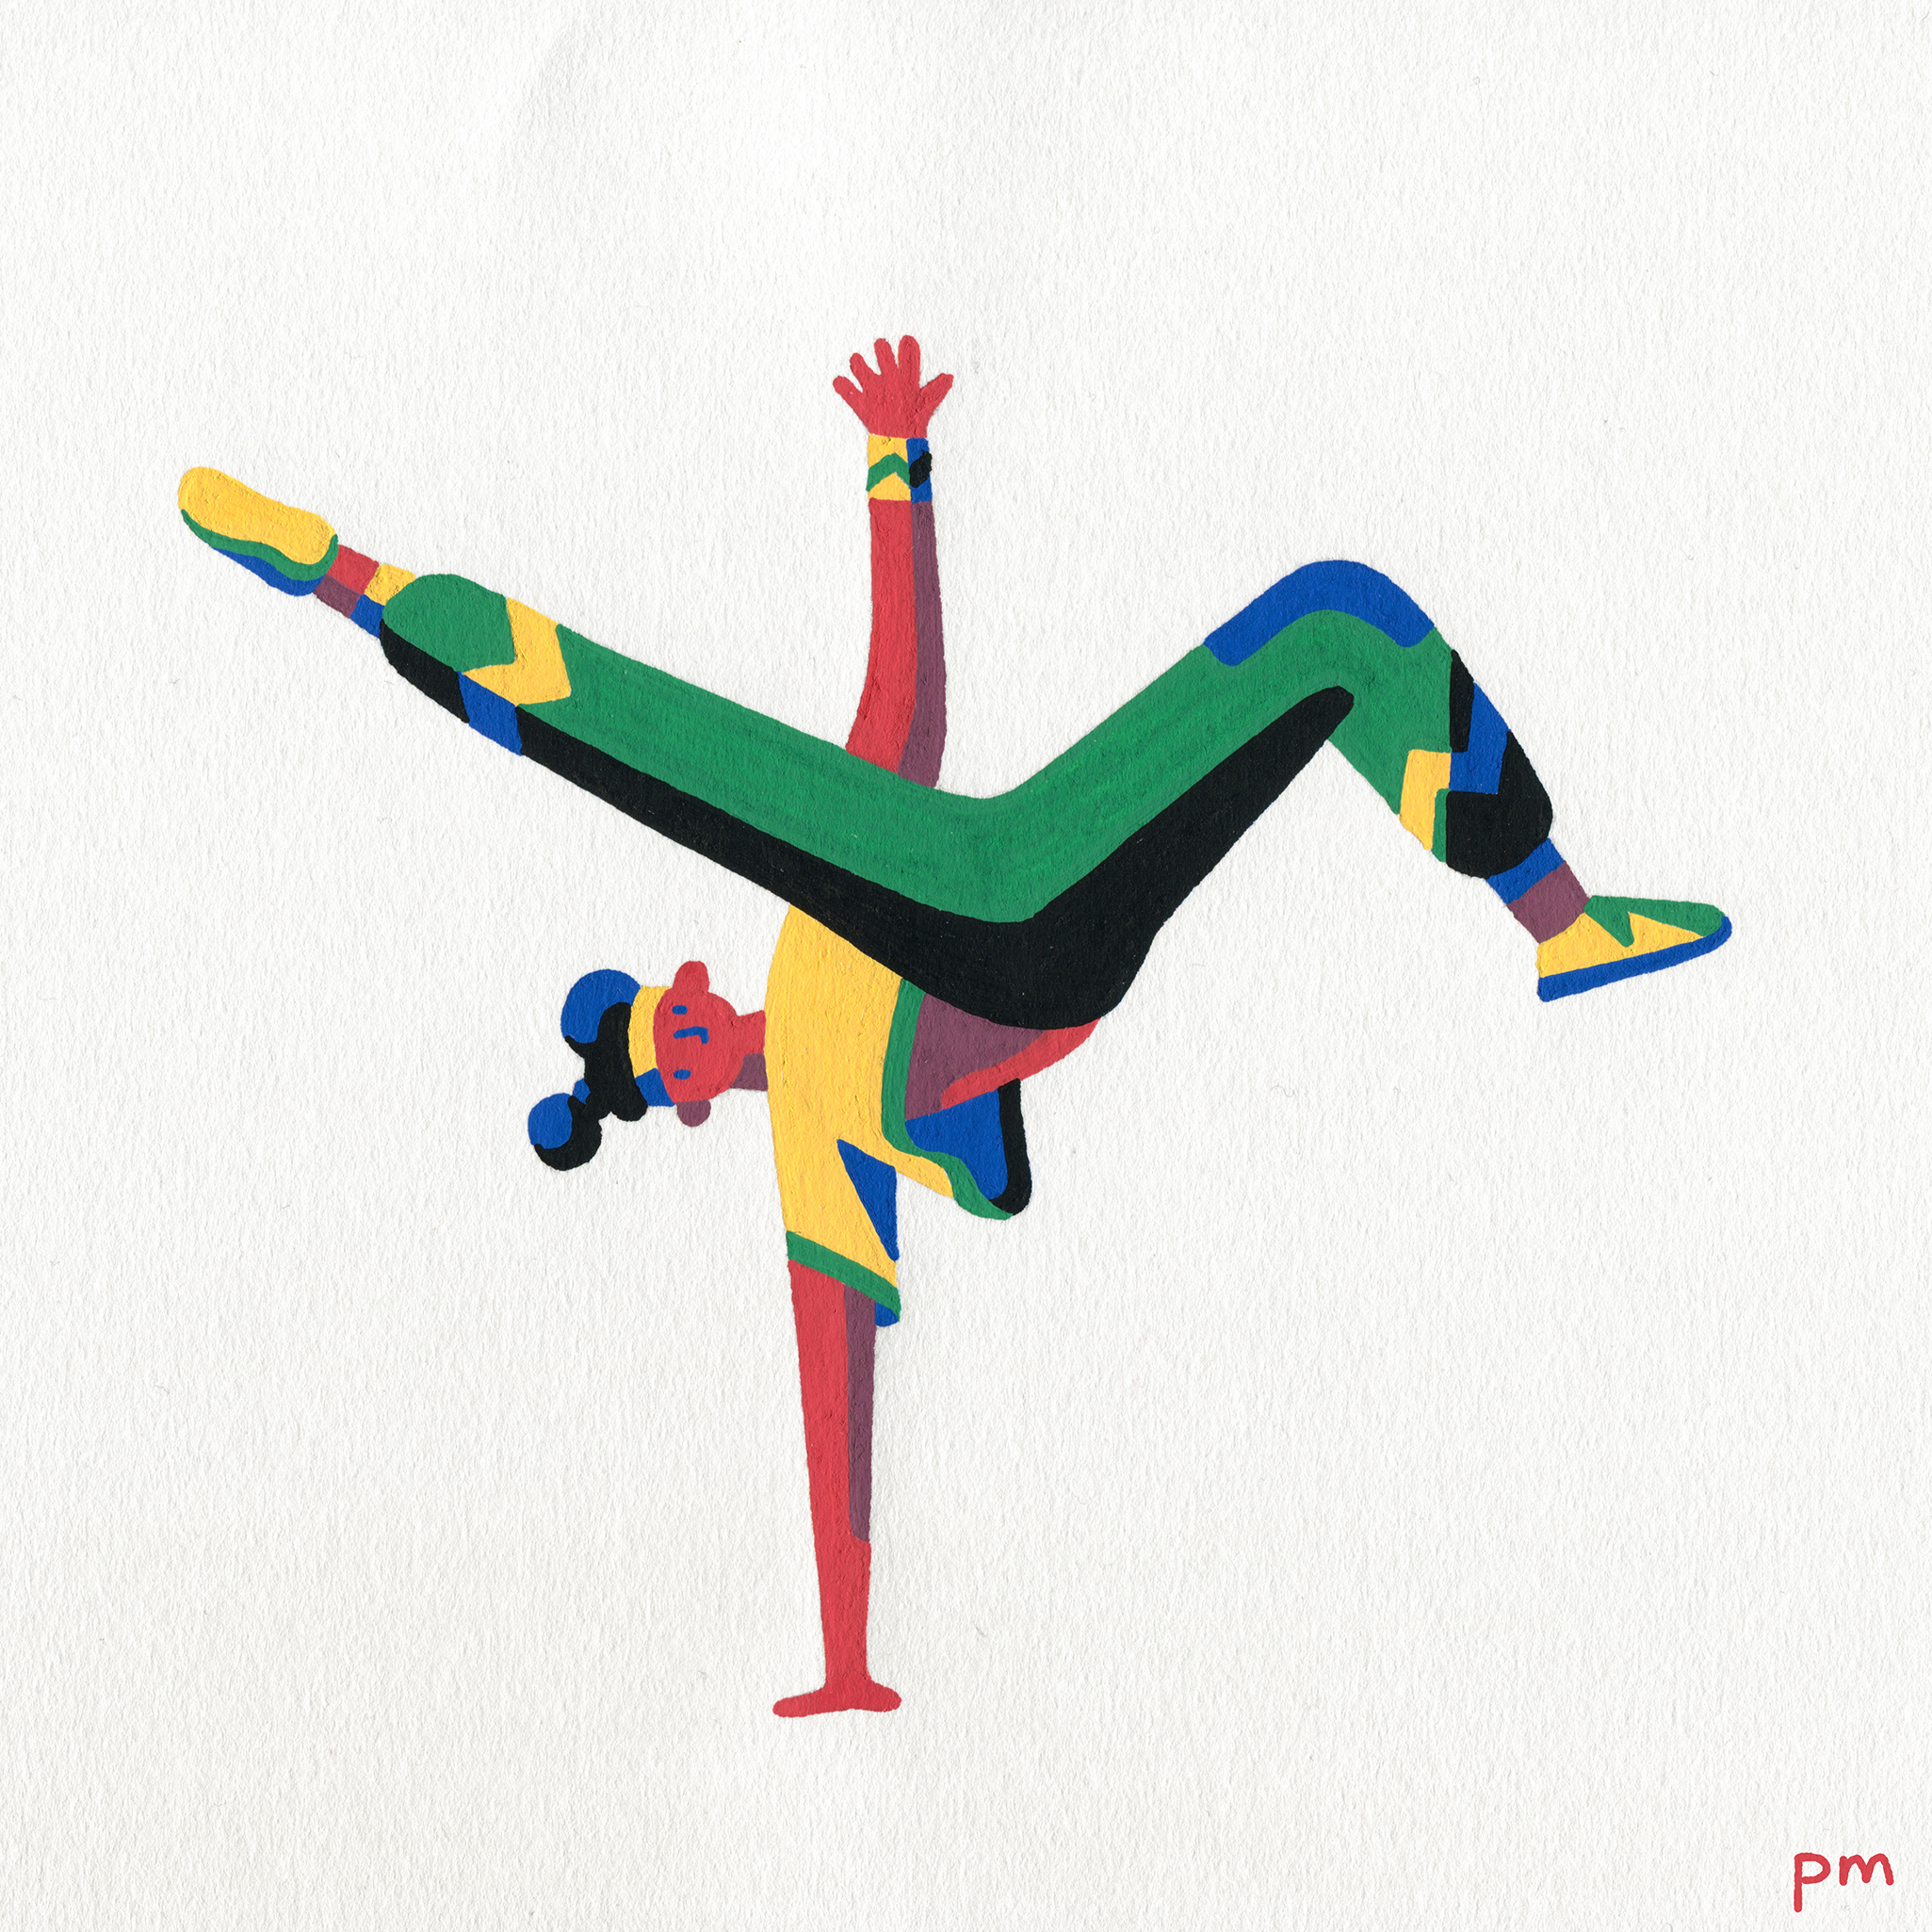 An illustration painting of a breakdancer dancing, hand drawn with colourful posca markers